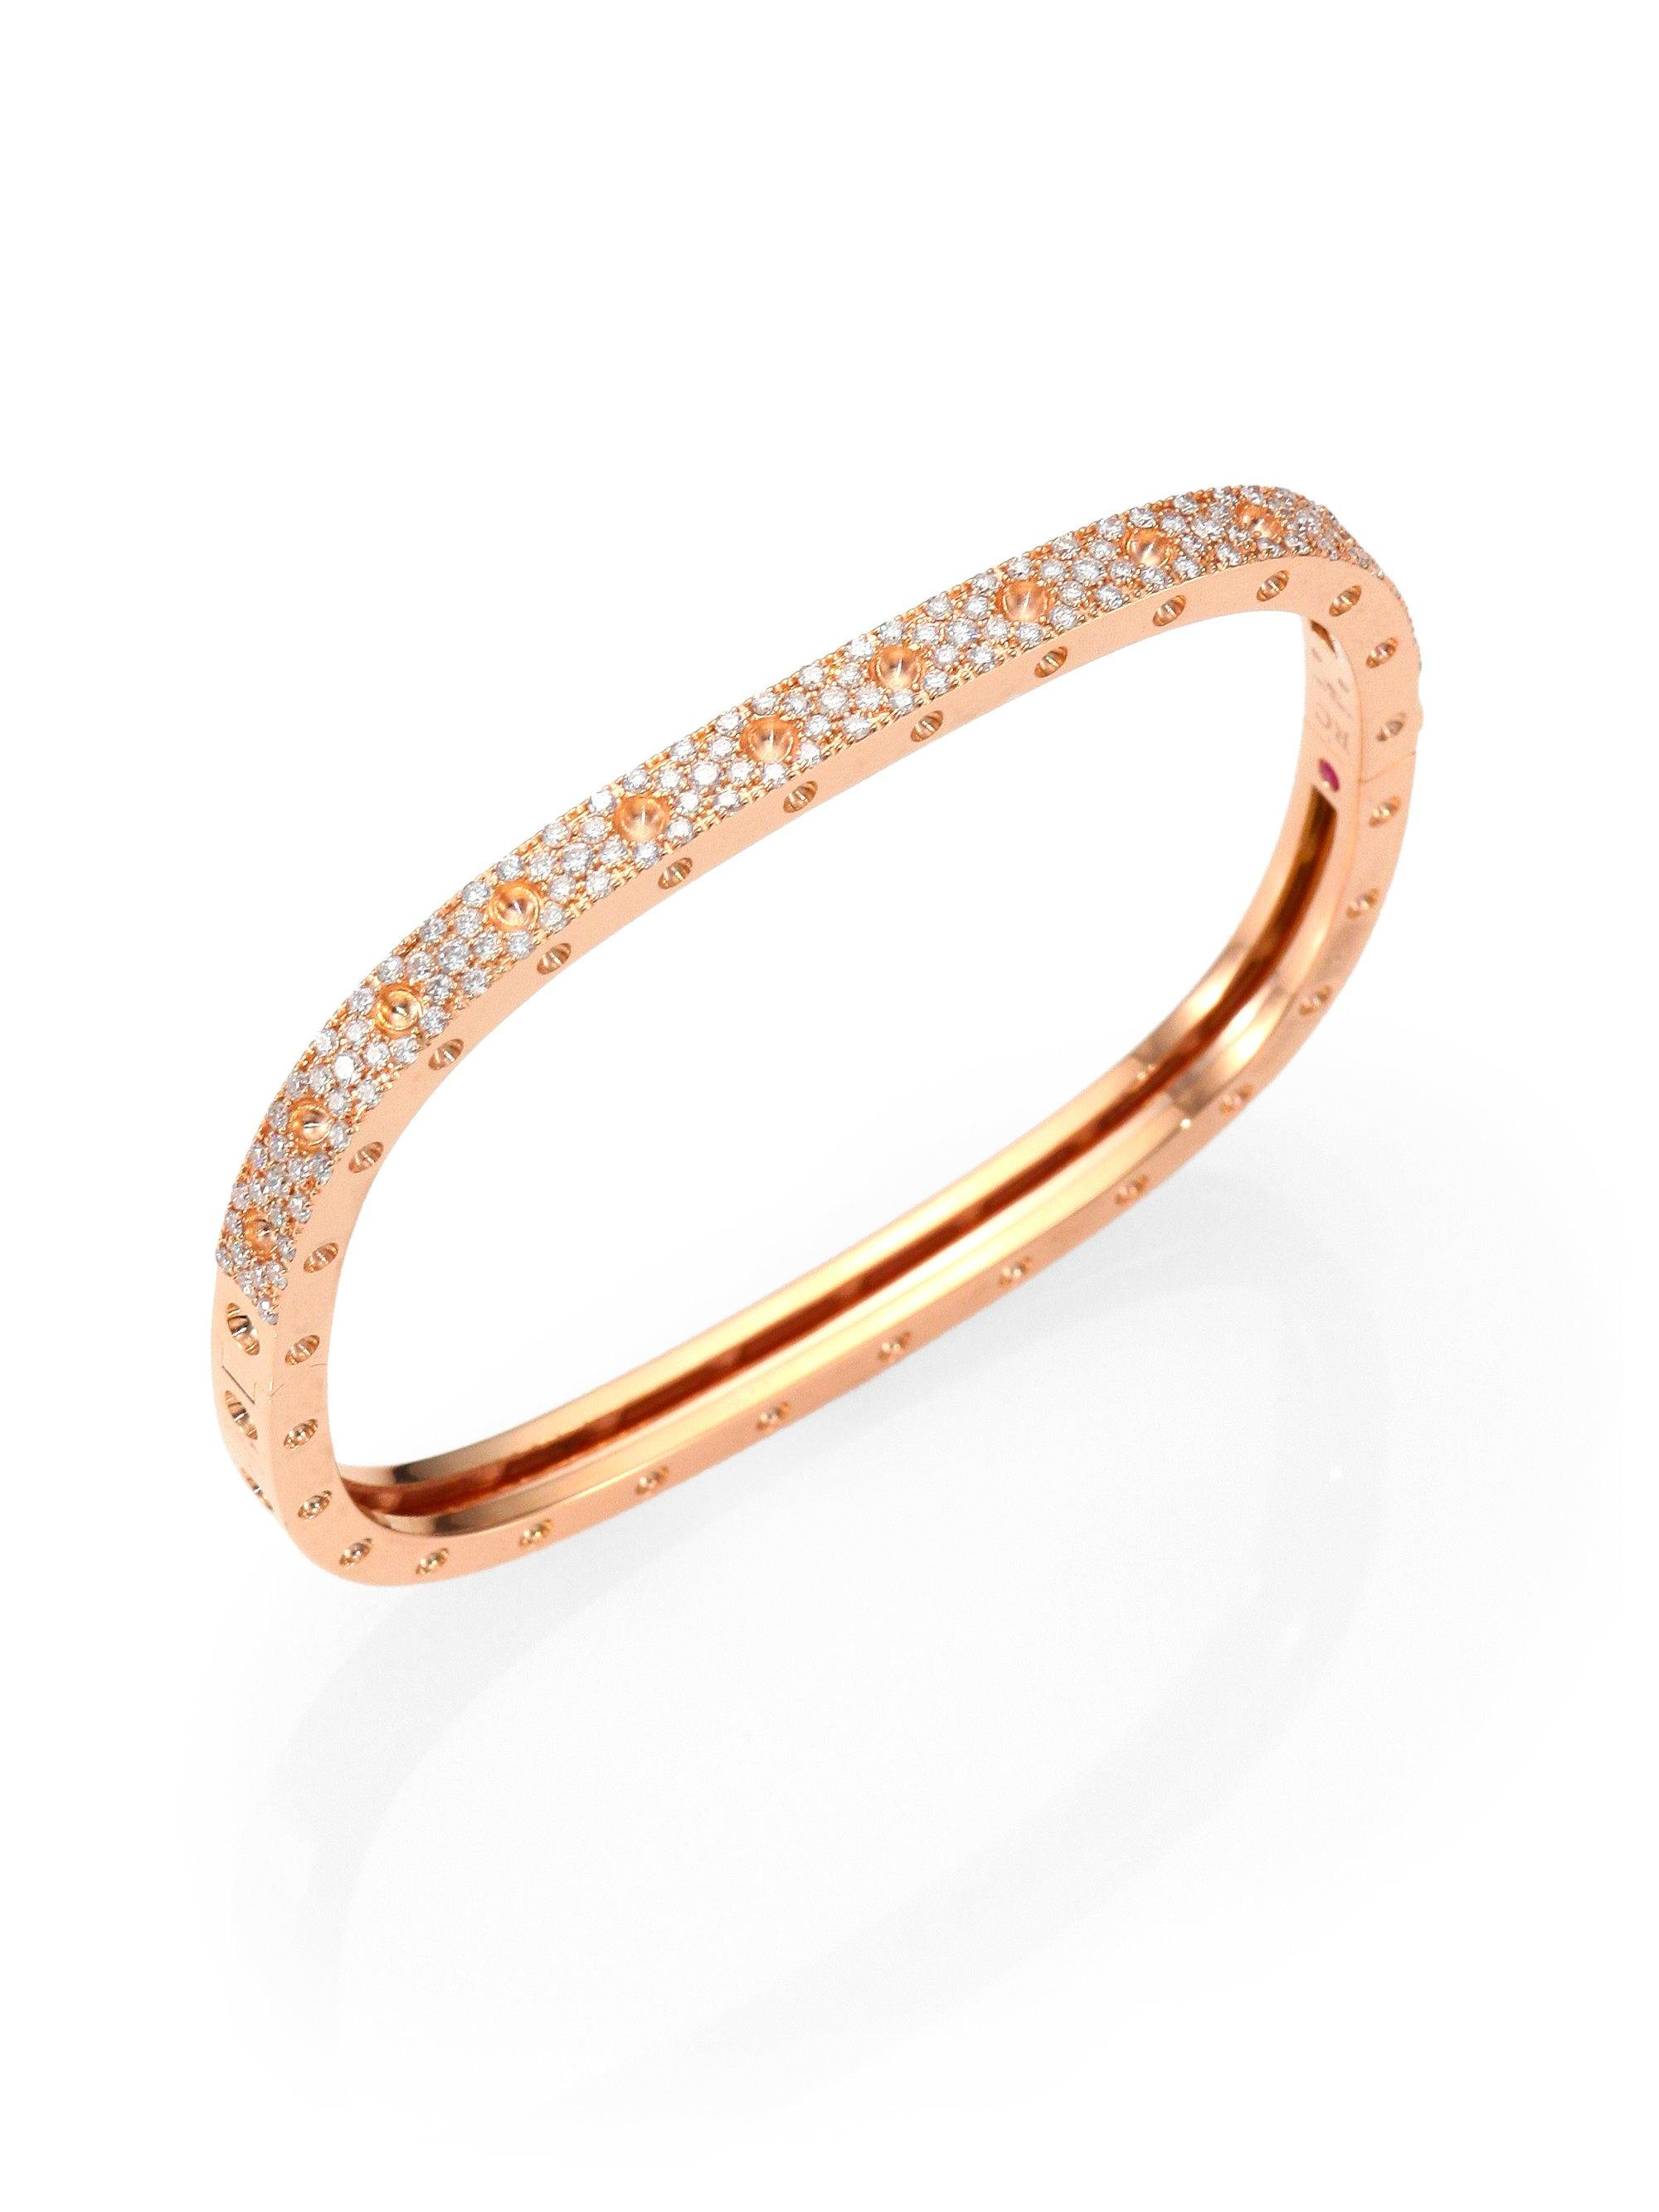 rivoir bangle eternity pav bangles micro resized tf pave gold white ring diamond batch